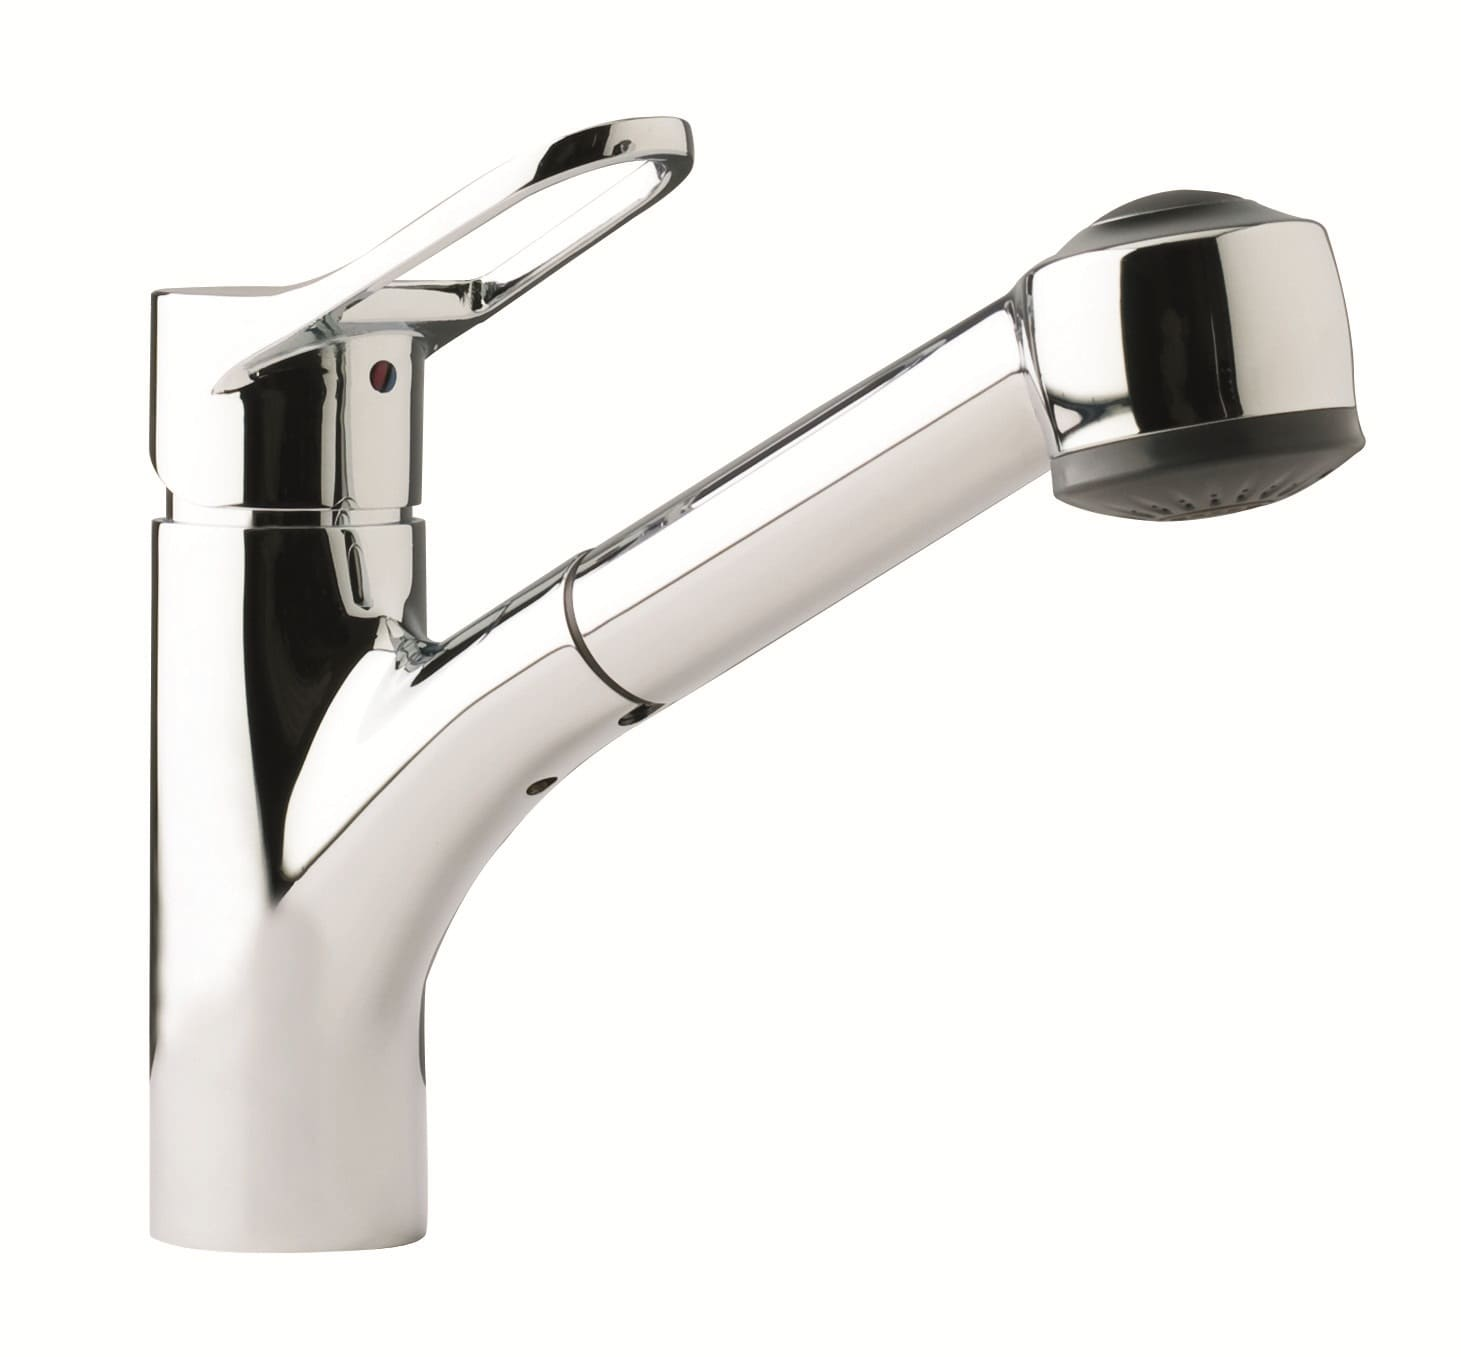 Franke Kitchen Faucets Franke Ffps200 Chrome Pullout Spray Kitchen Faucet Faucetcom